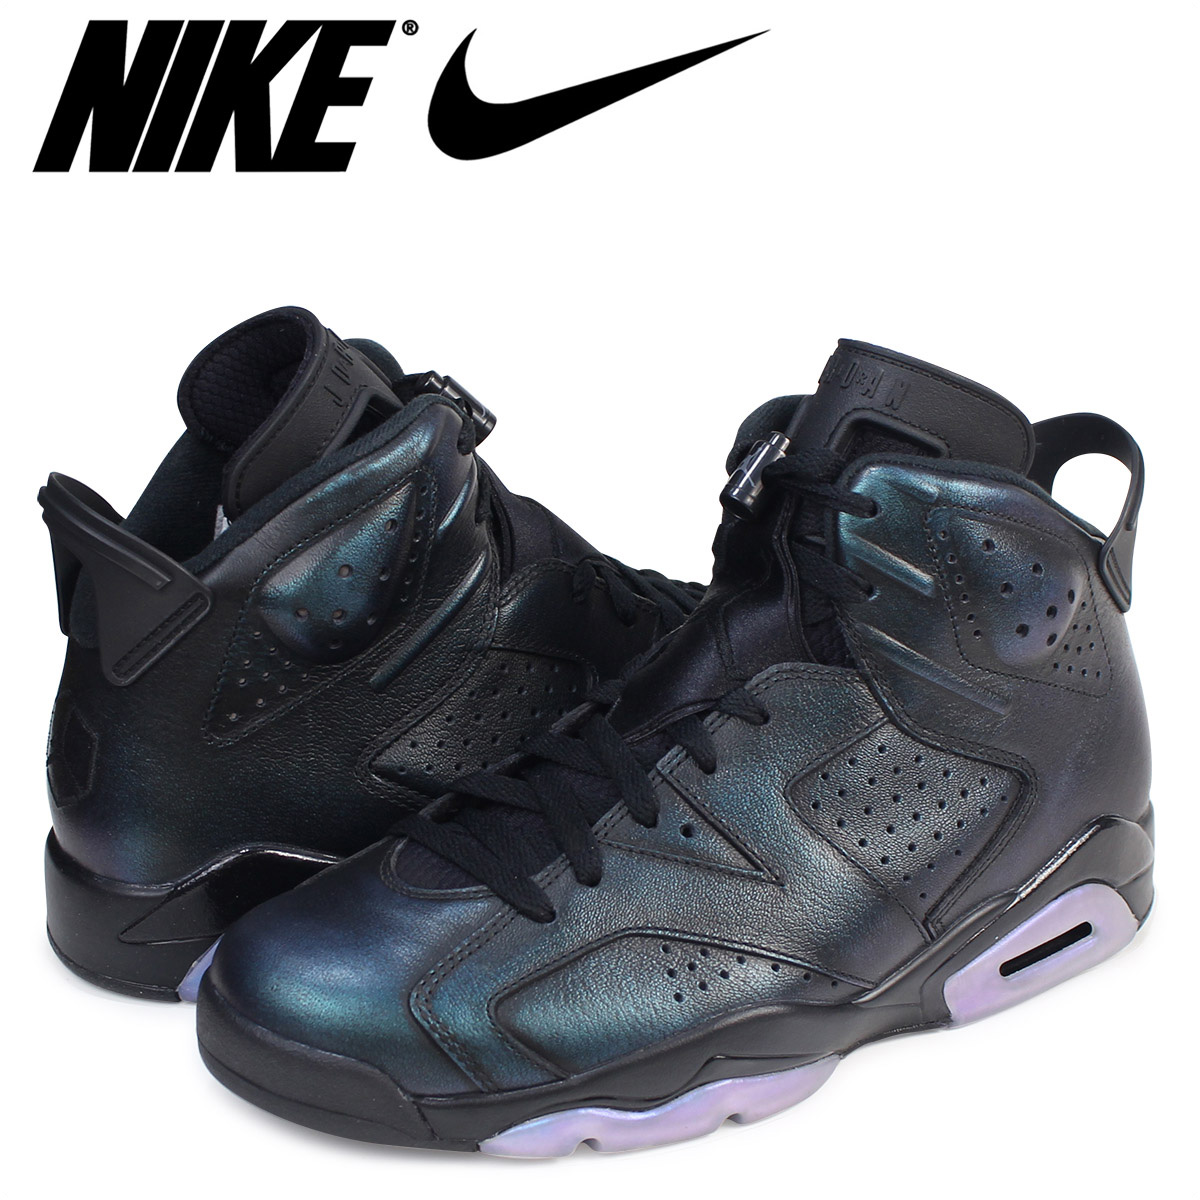 half off b9566 7520f Nike NIKE Air Jordan 6 nostalgic sneakers AIR JORDAN 6 RETRO ALL STAR  907,961-015 men's shoes black [load planned Shinnyu load in reservation  product ...